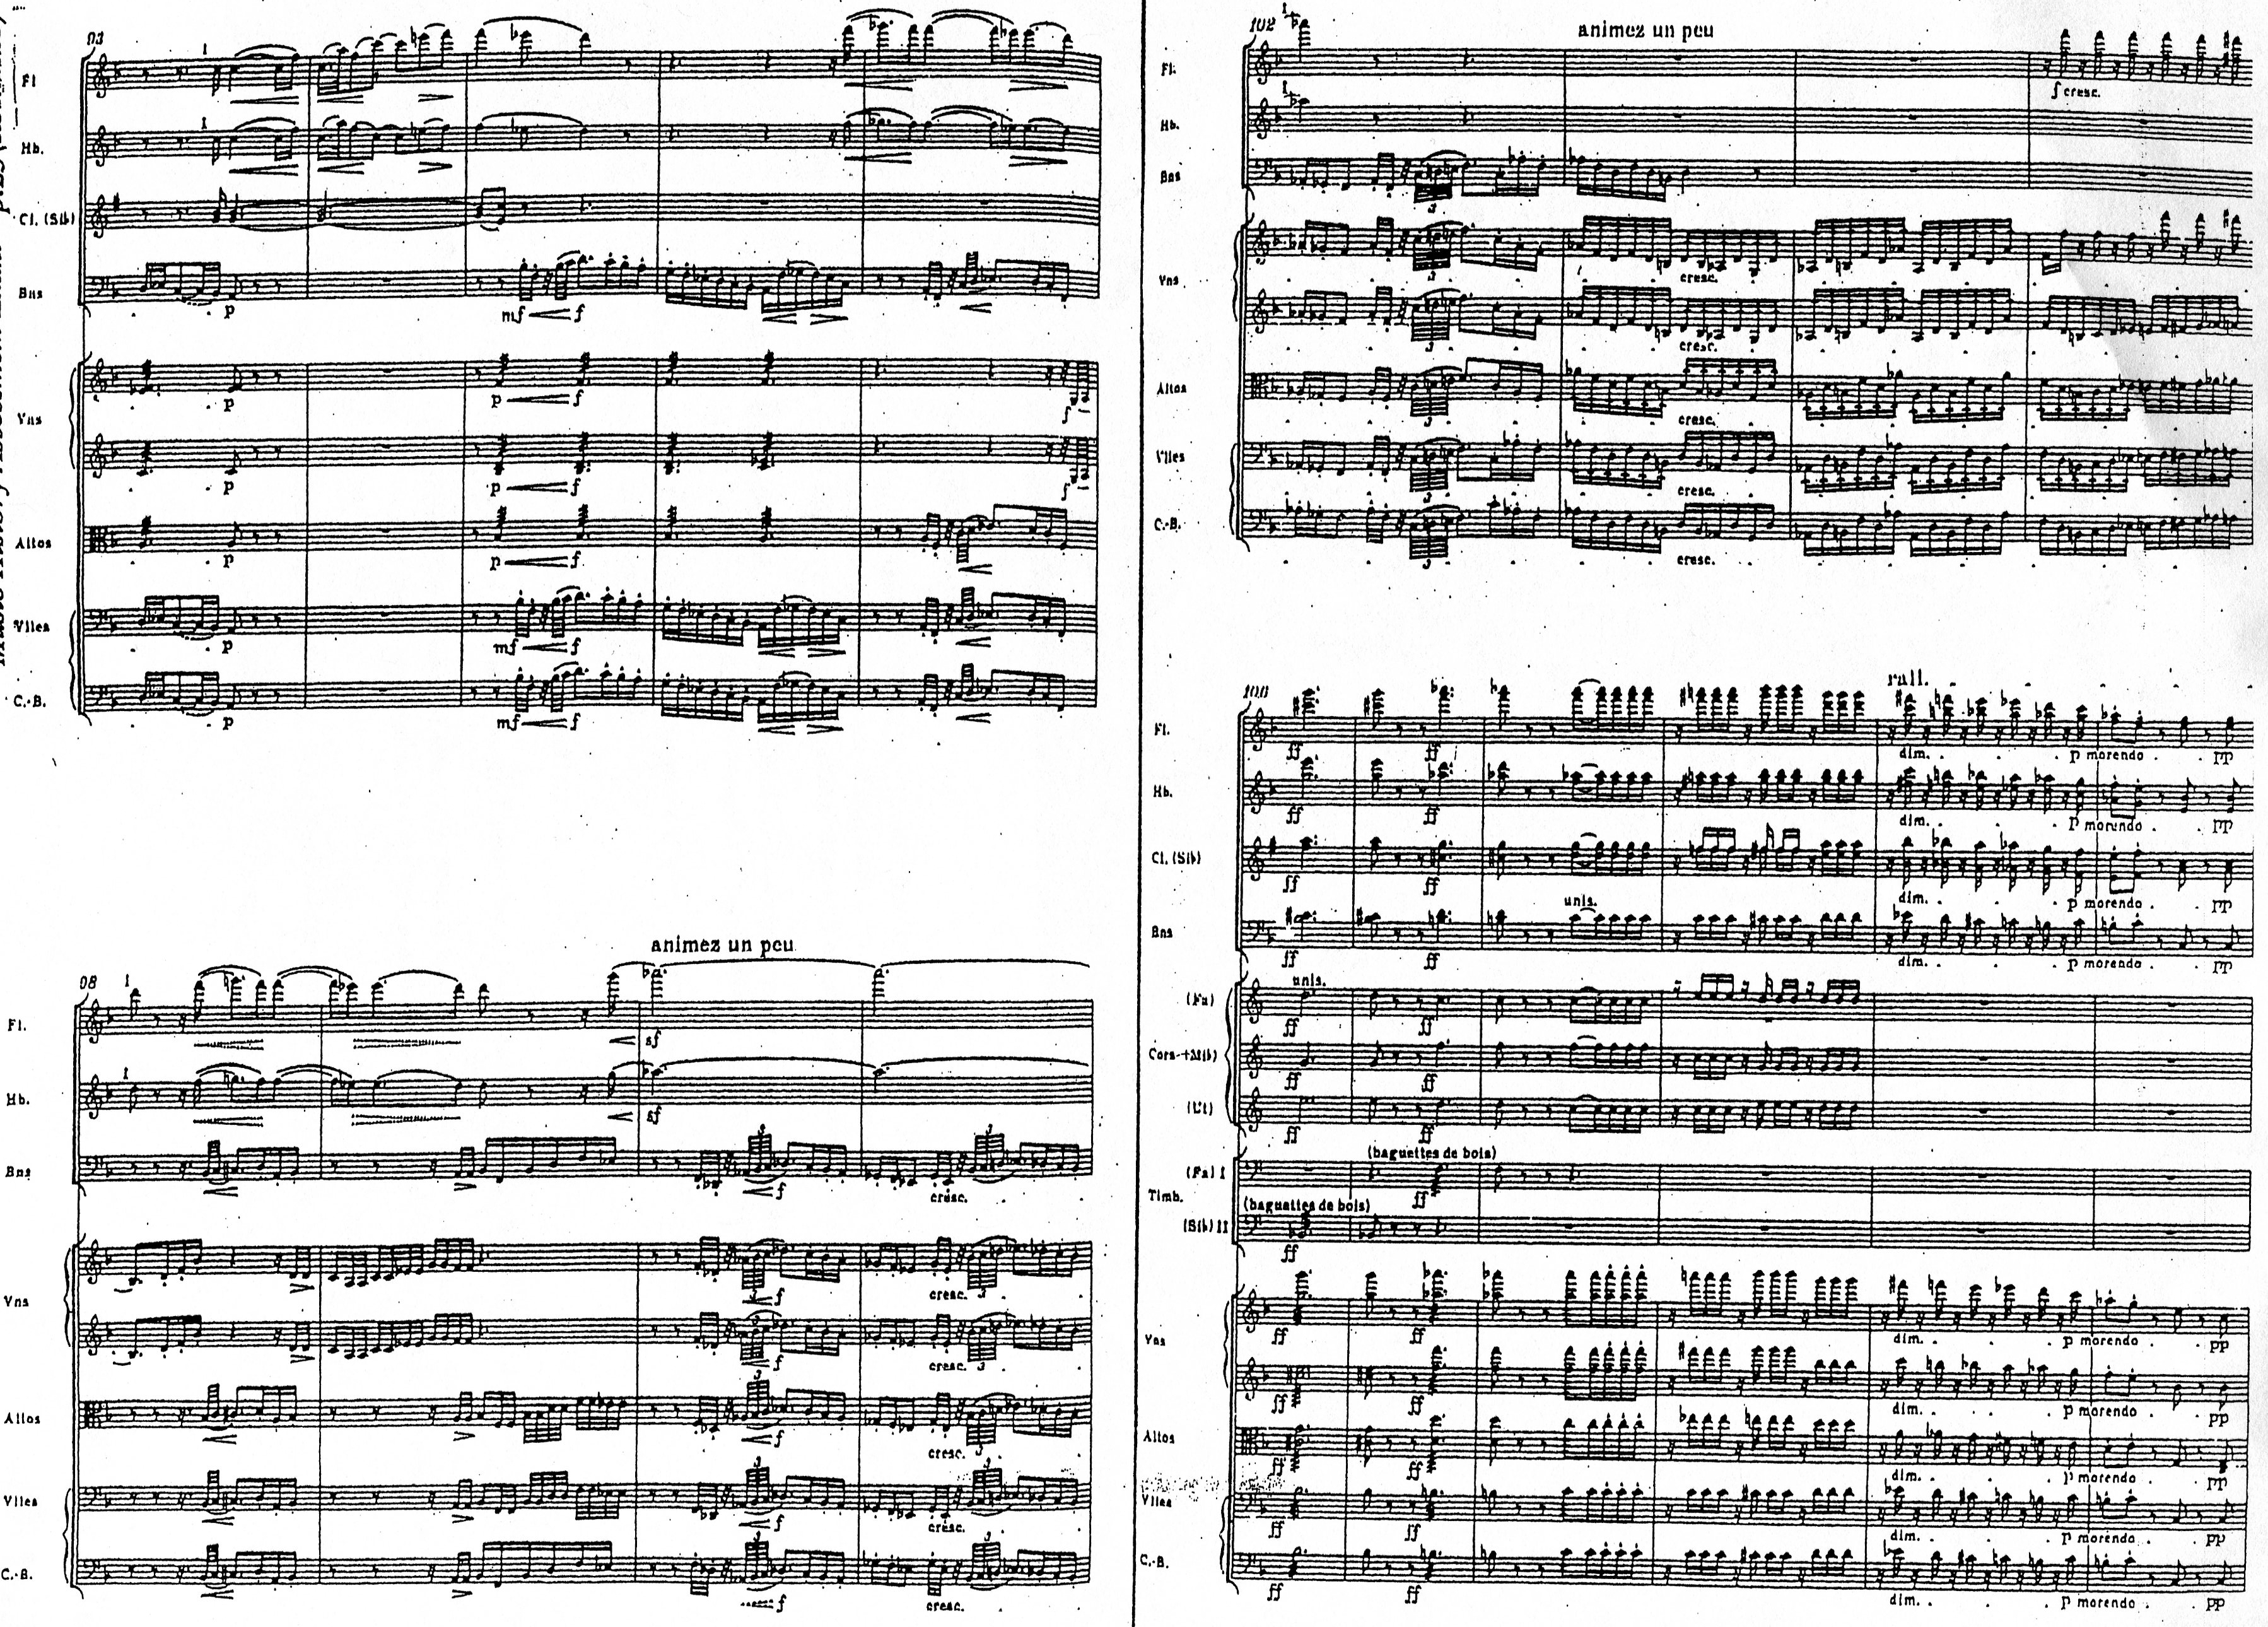 an analysis of the five movements in the symphonie fantastique by hector berlioz The five movement symphonie fantastique, partly due to its fame, is considered by most to be berlioz's most outstanding work the hector berlioz website, comprehensive berlioz reference site, including scores, analysis and libretti hector berlioz material.